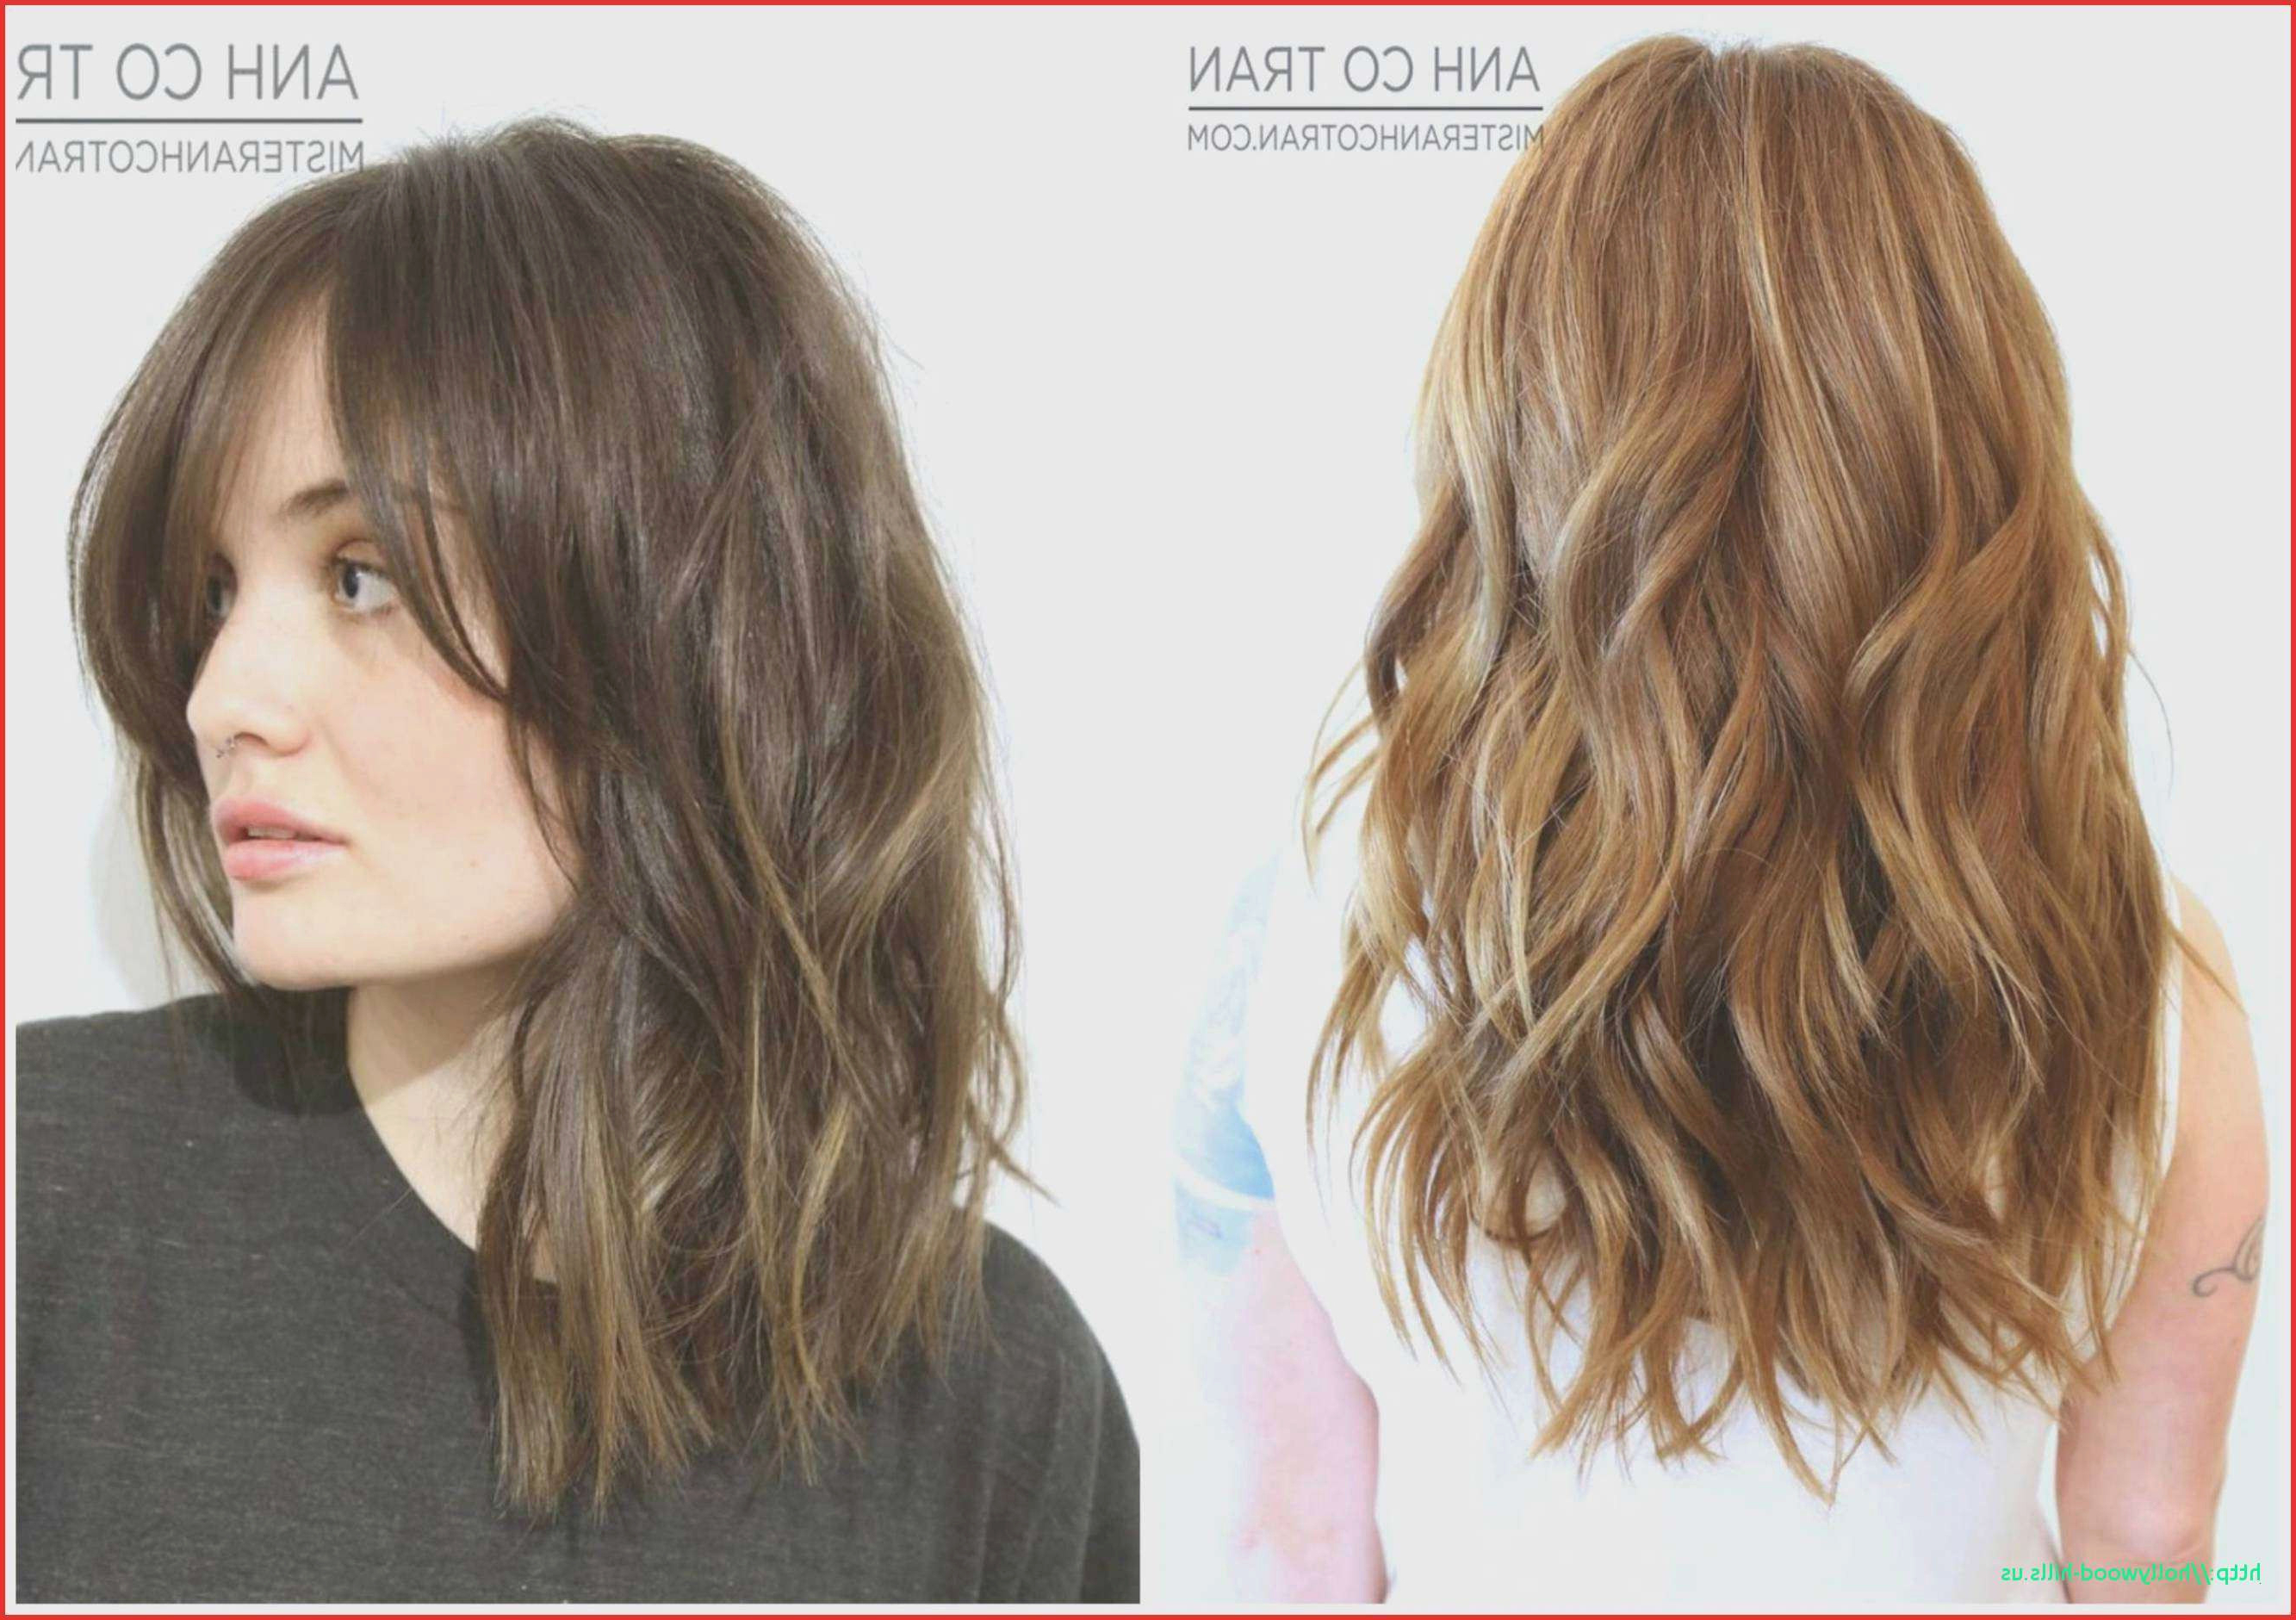 Hairstyles : Hairstyles For Medium Layered Hair Scenic Hairstyles Pertaining To Fashionable Choppy Layers Hairstyles (Gallery 20 of 20)